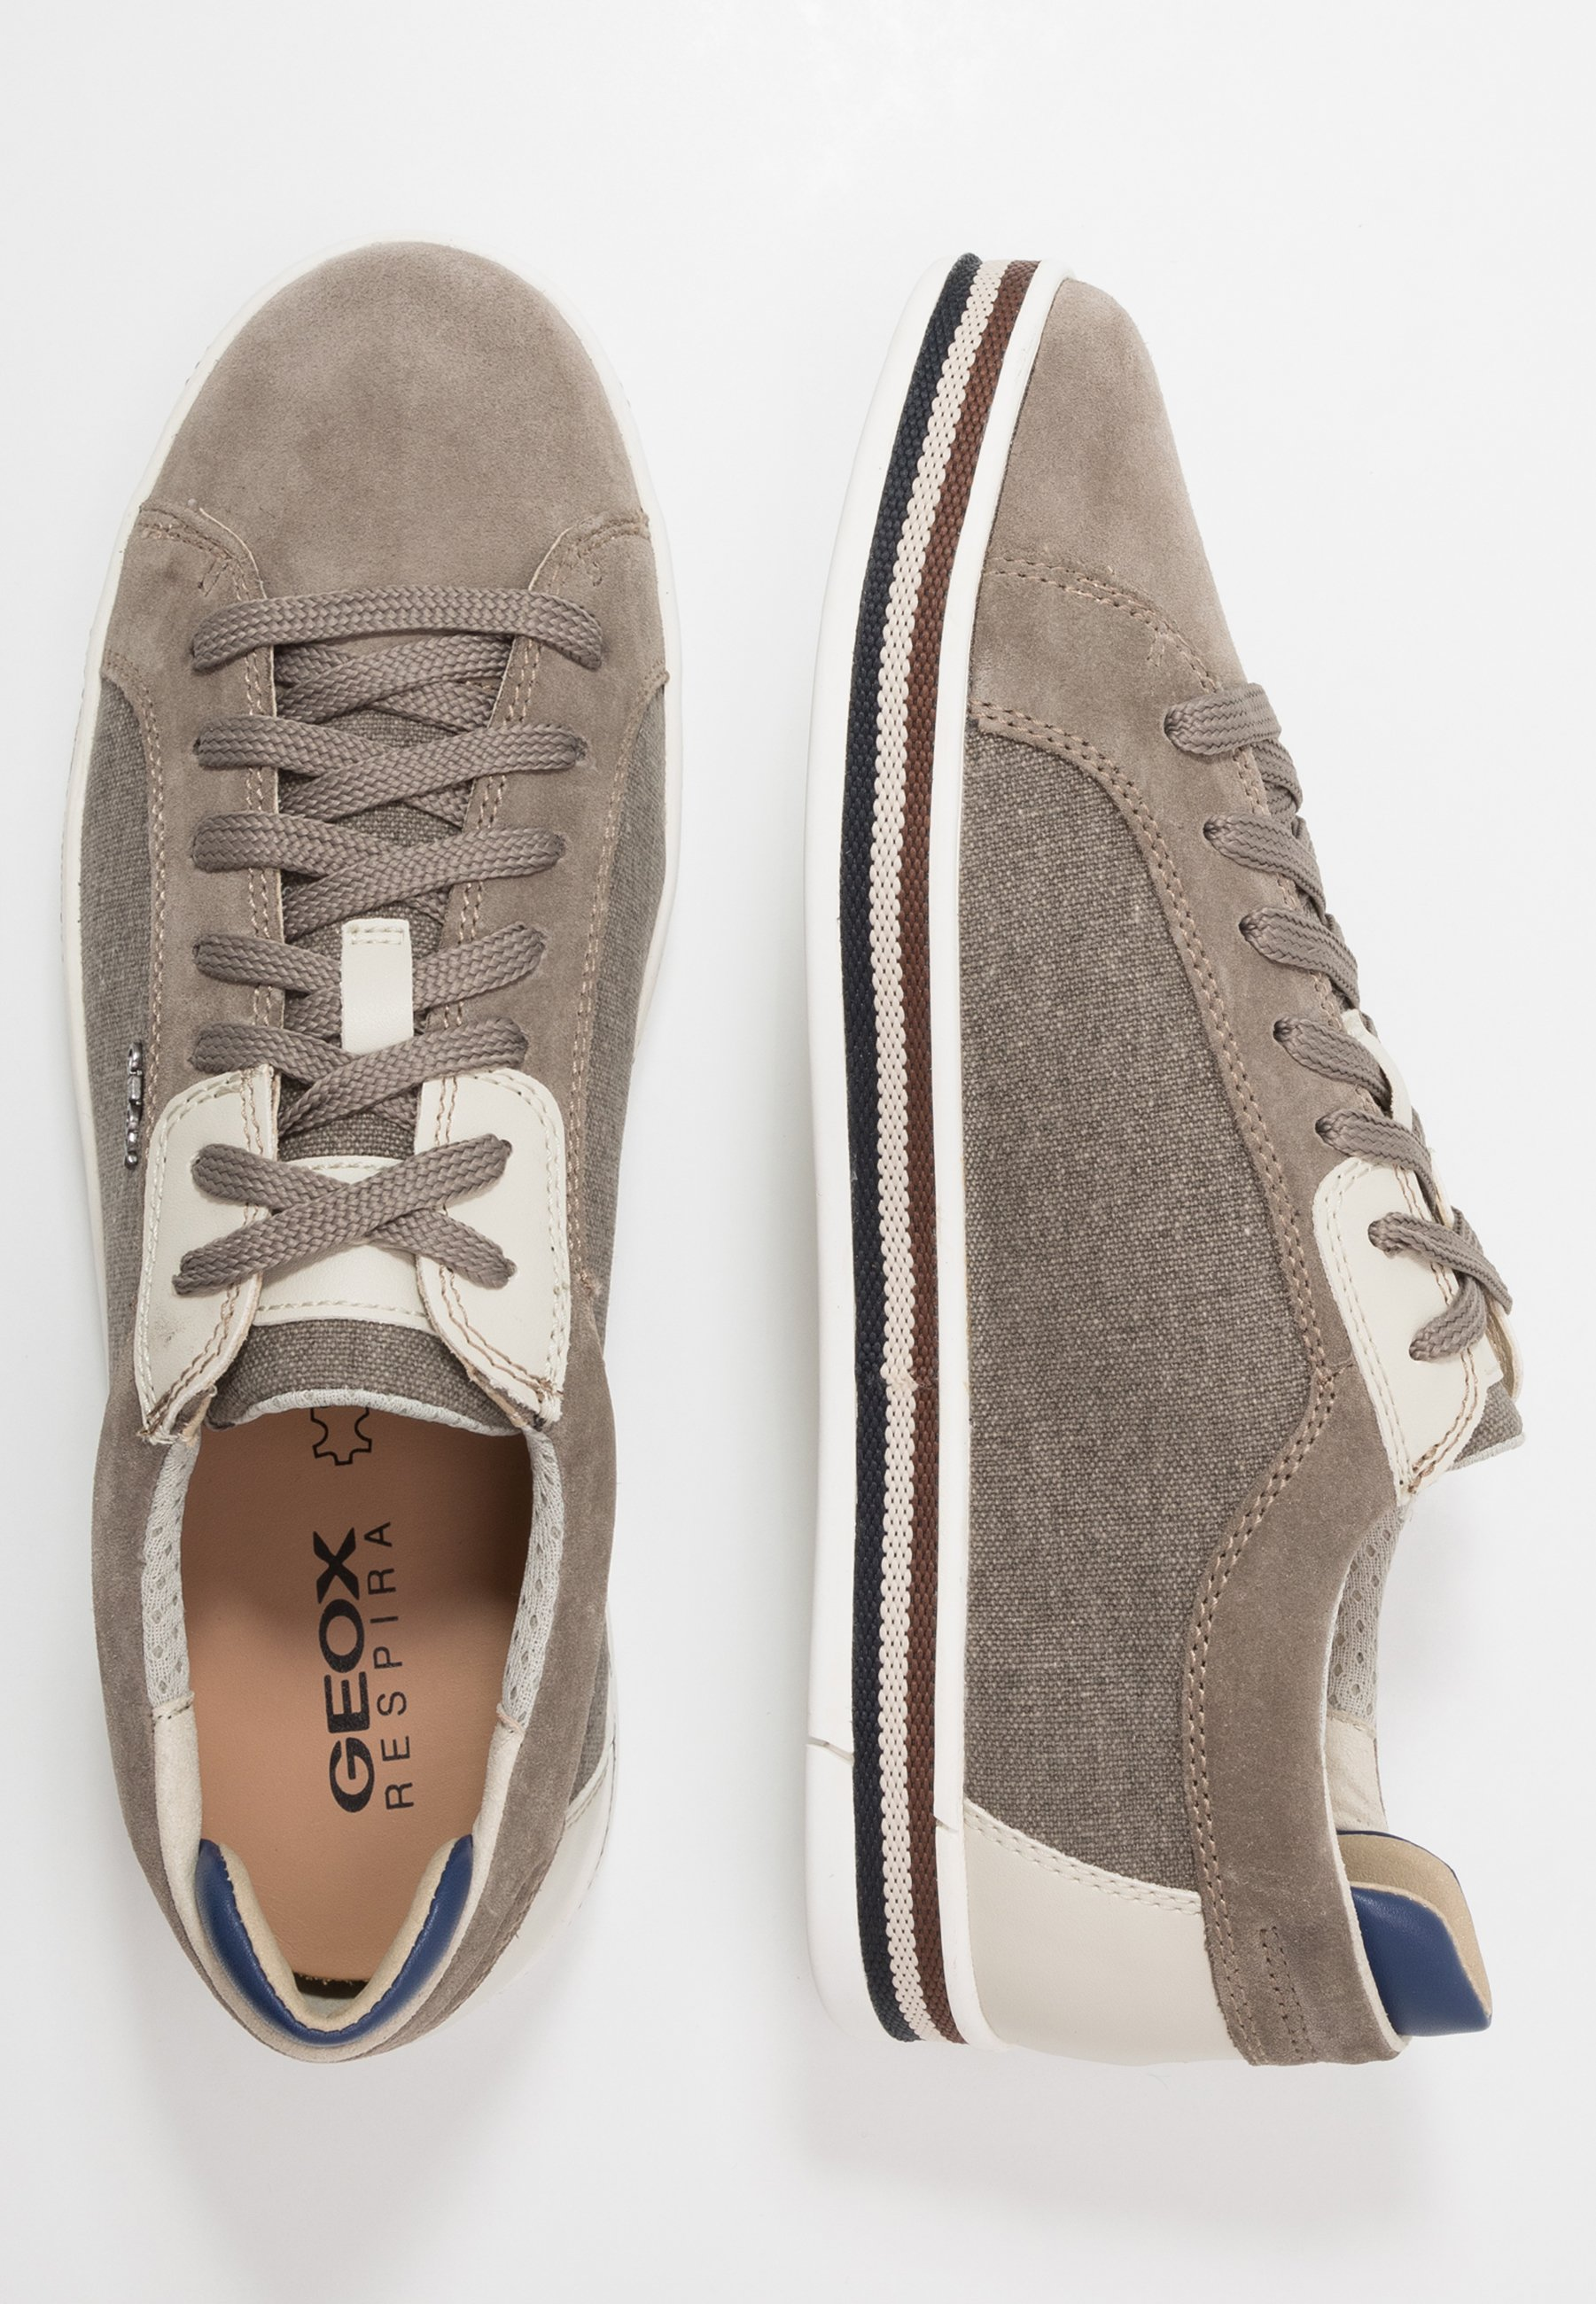 Geox Eolo - Sneaker Low Taupe Black Friday